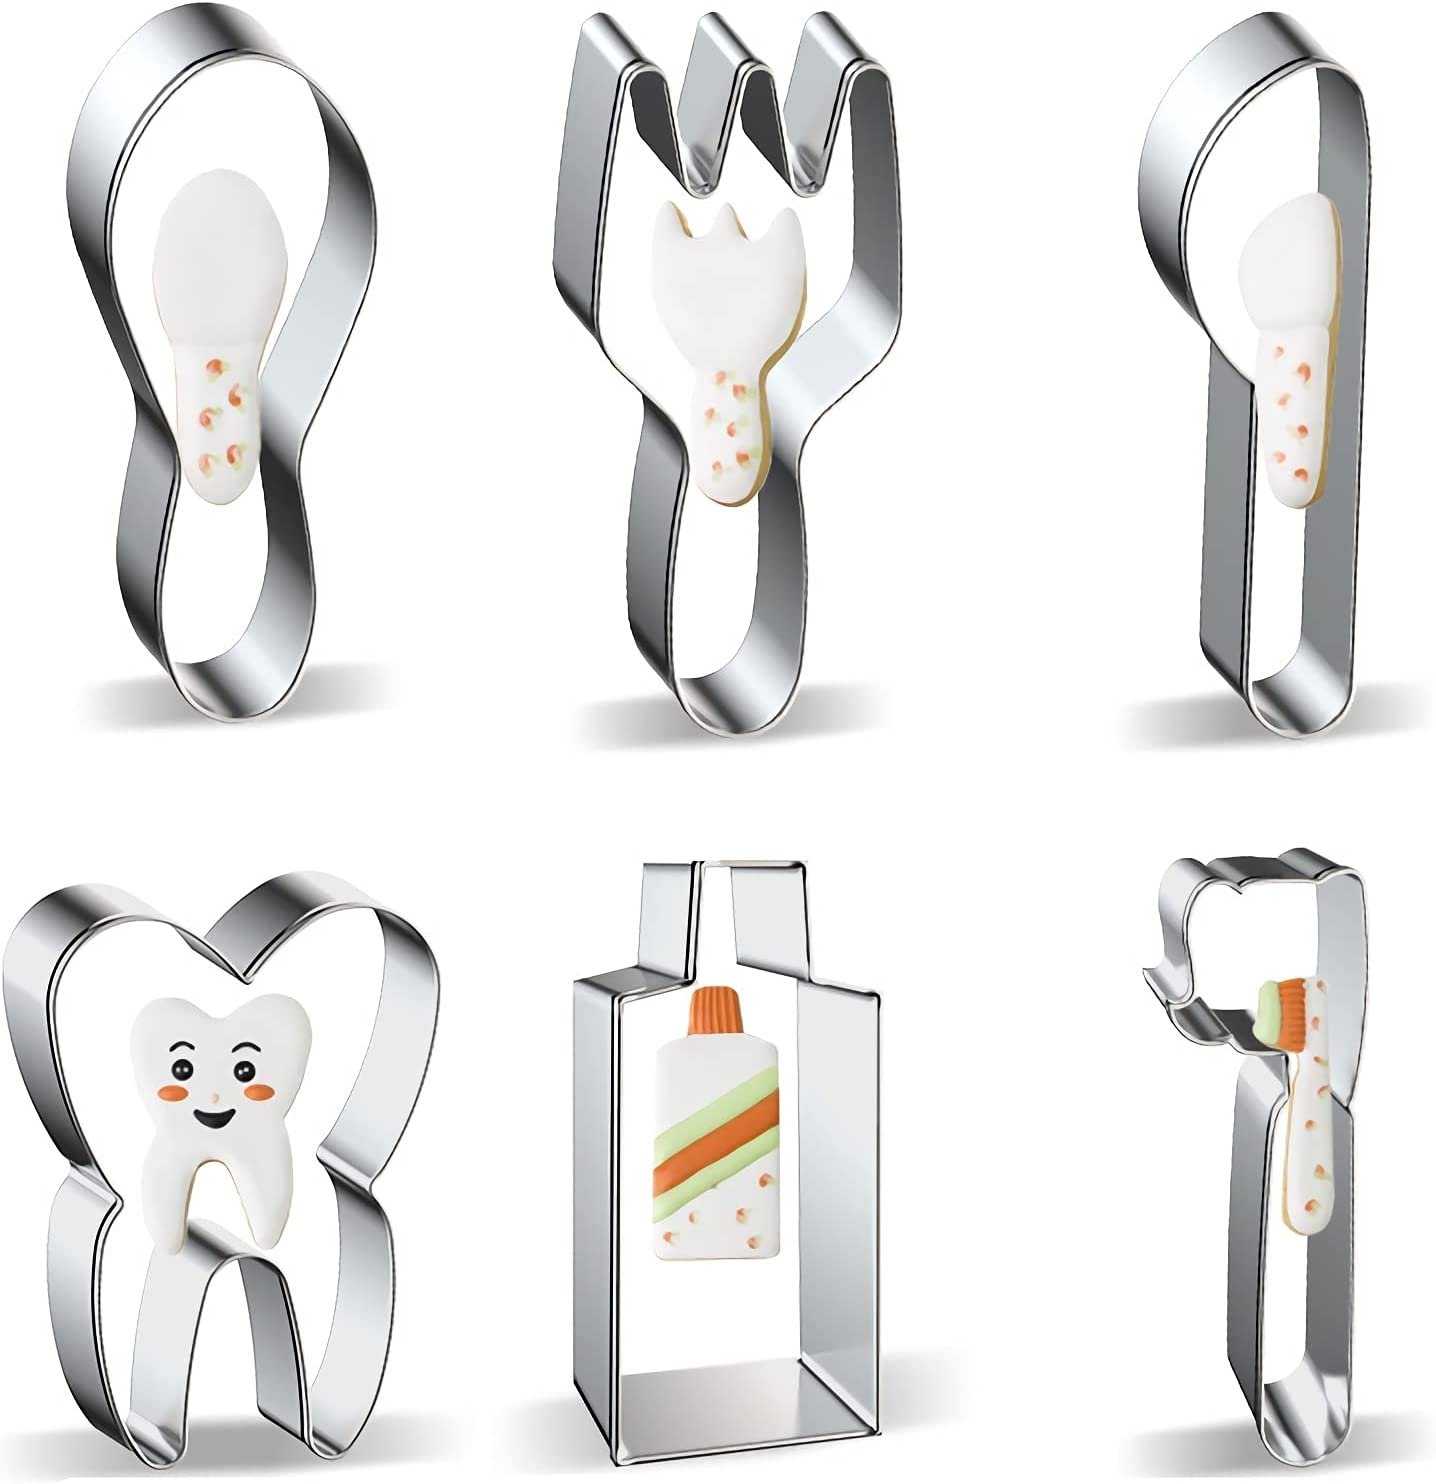 Tooth Toothpaste Toothbrush Shapes Cookie Knife Oklahoma City Mall and Fork Financial sales sale Cutters